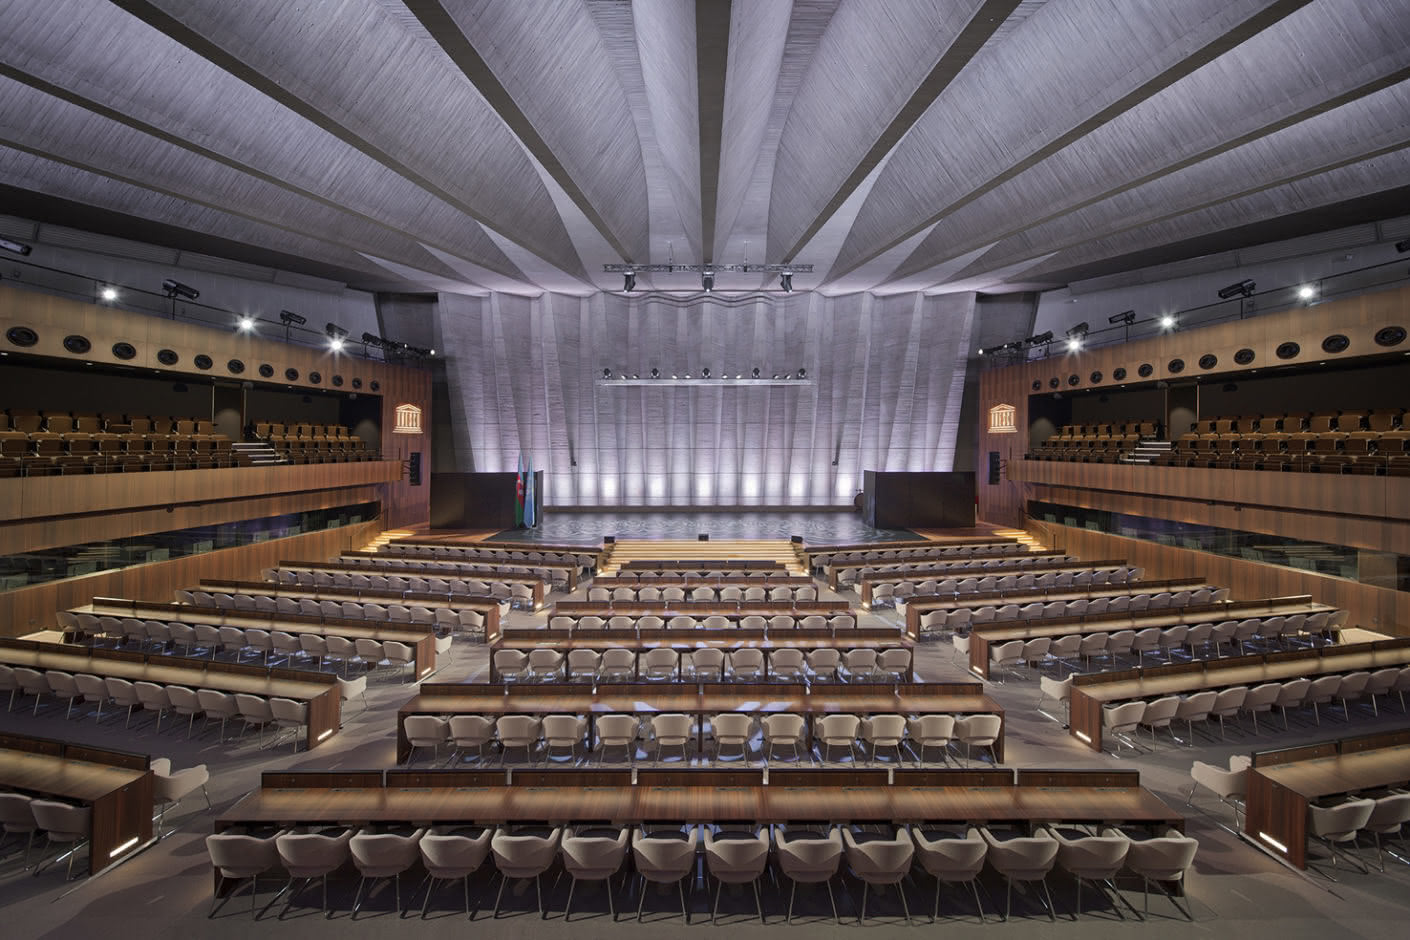 The Auditorium of the UNESCO headquarters in Paris impresses with generous dimensions.